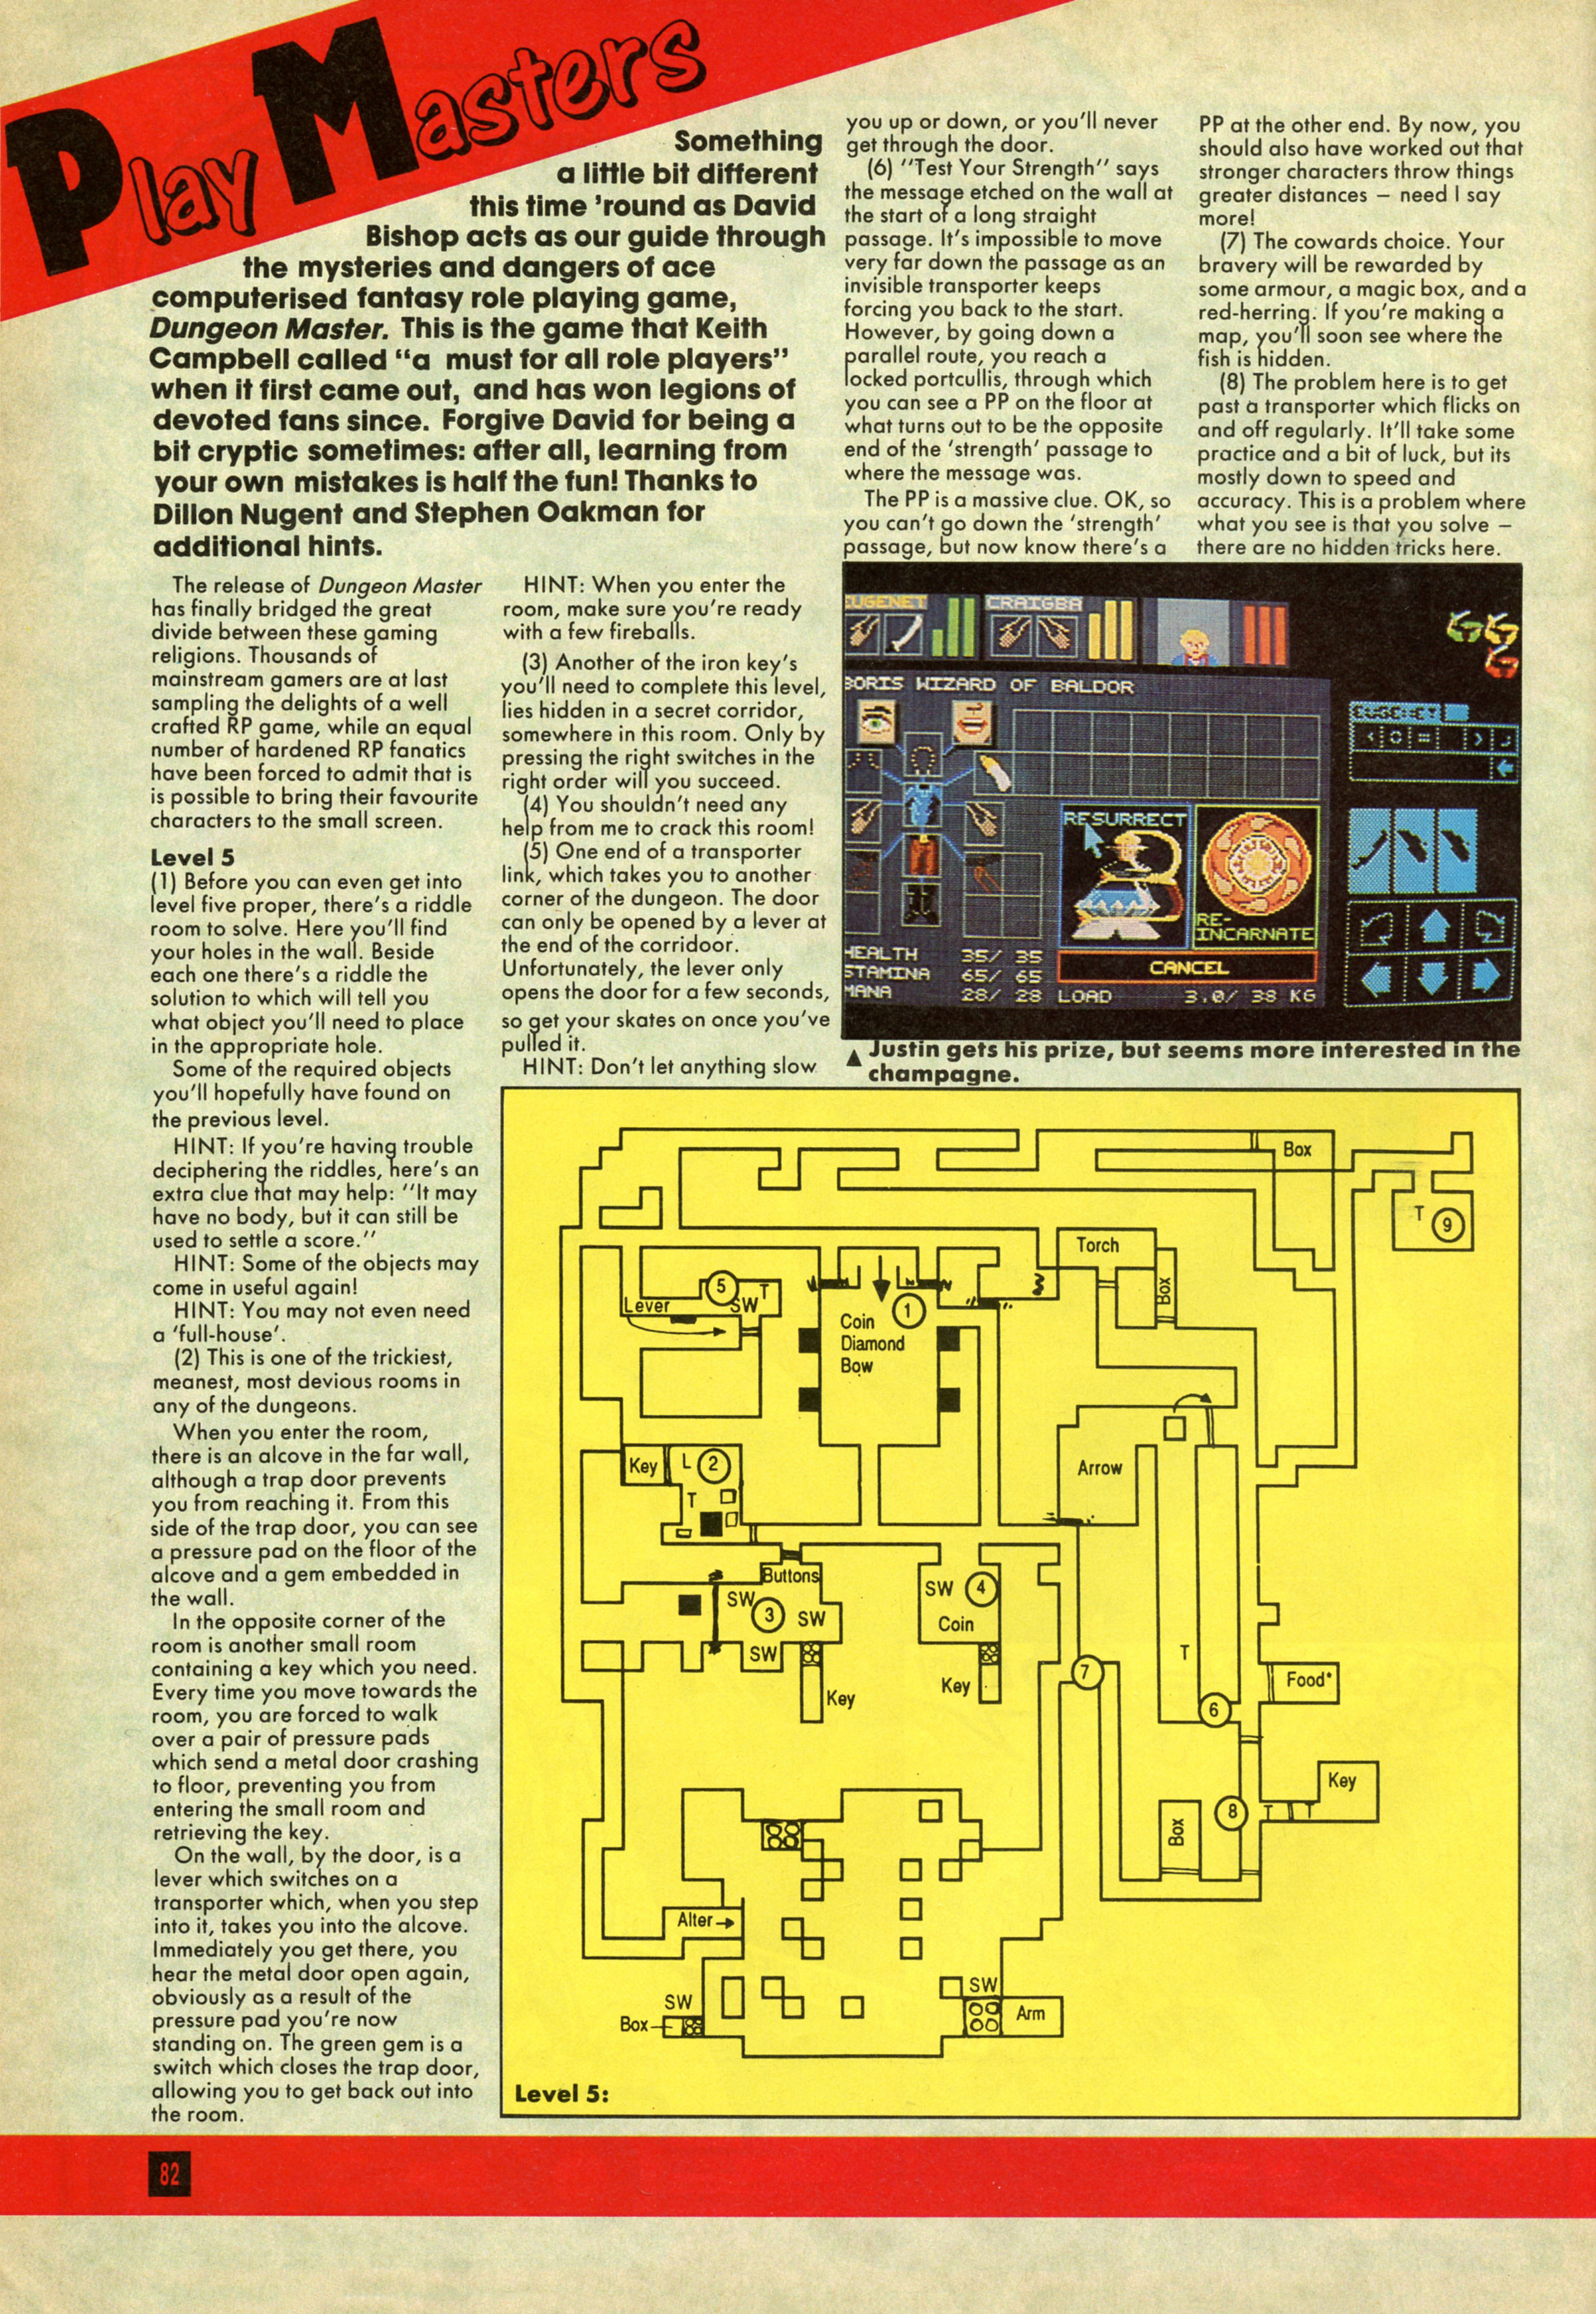 Dungeon Master Guide published in British magazine 'Computer And Video Games', Issue #81 July 1988, Page 82